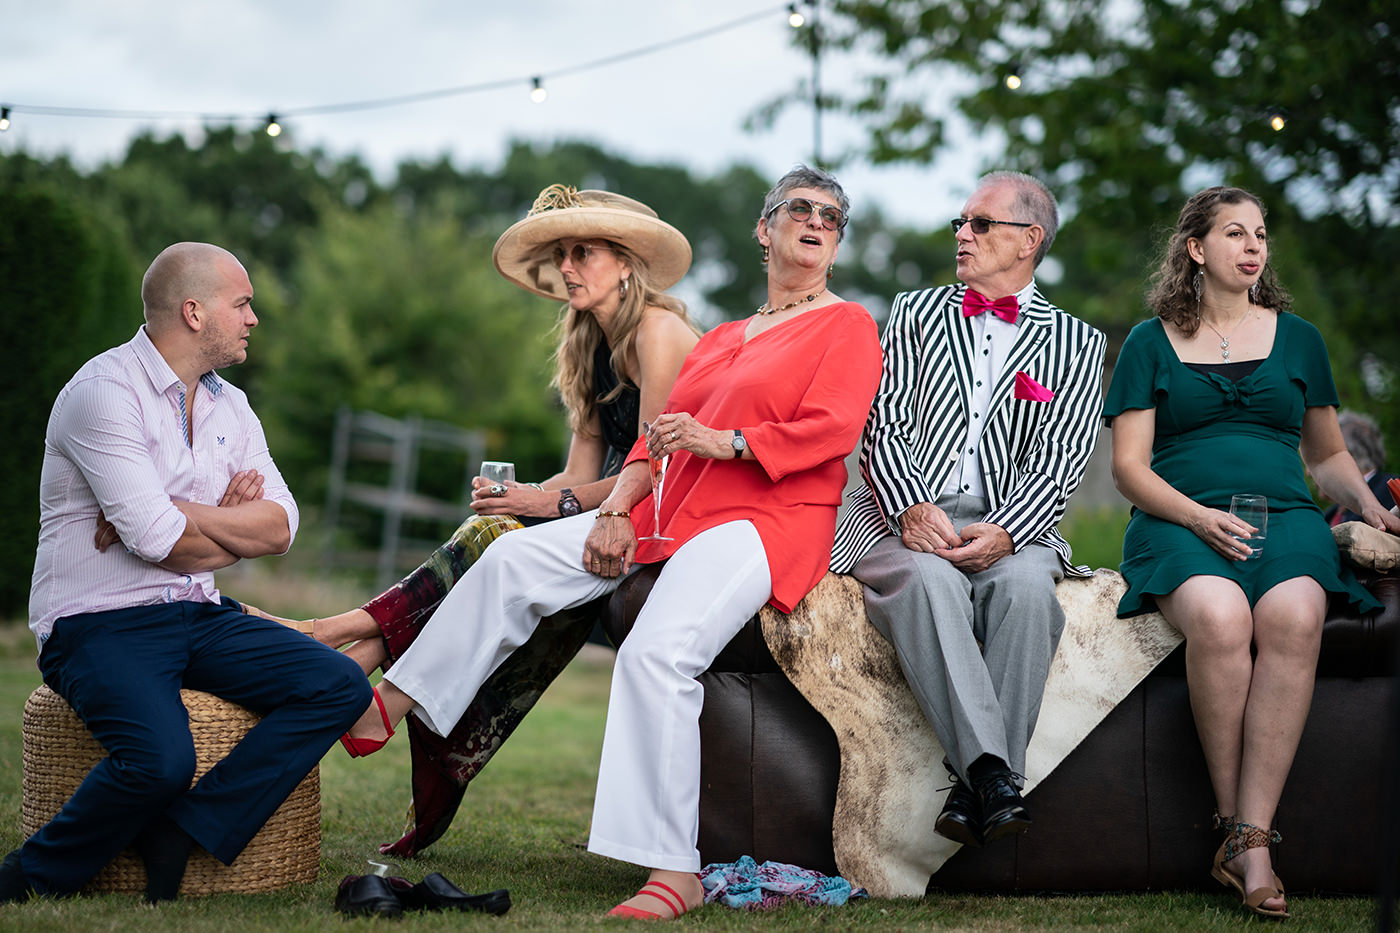 Wedding Guests in the Country Reportage Photographer